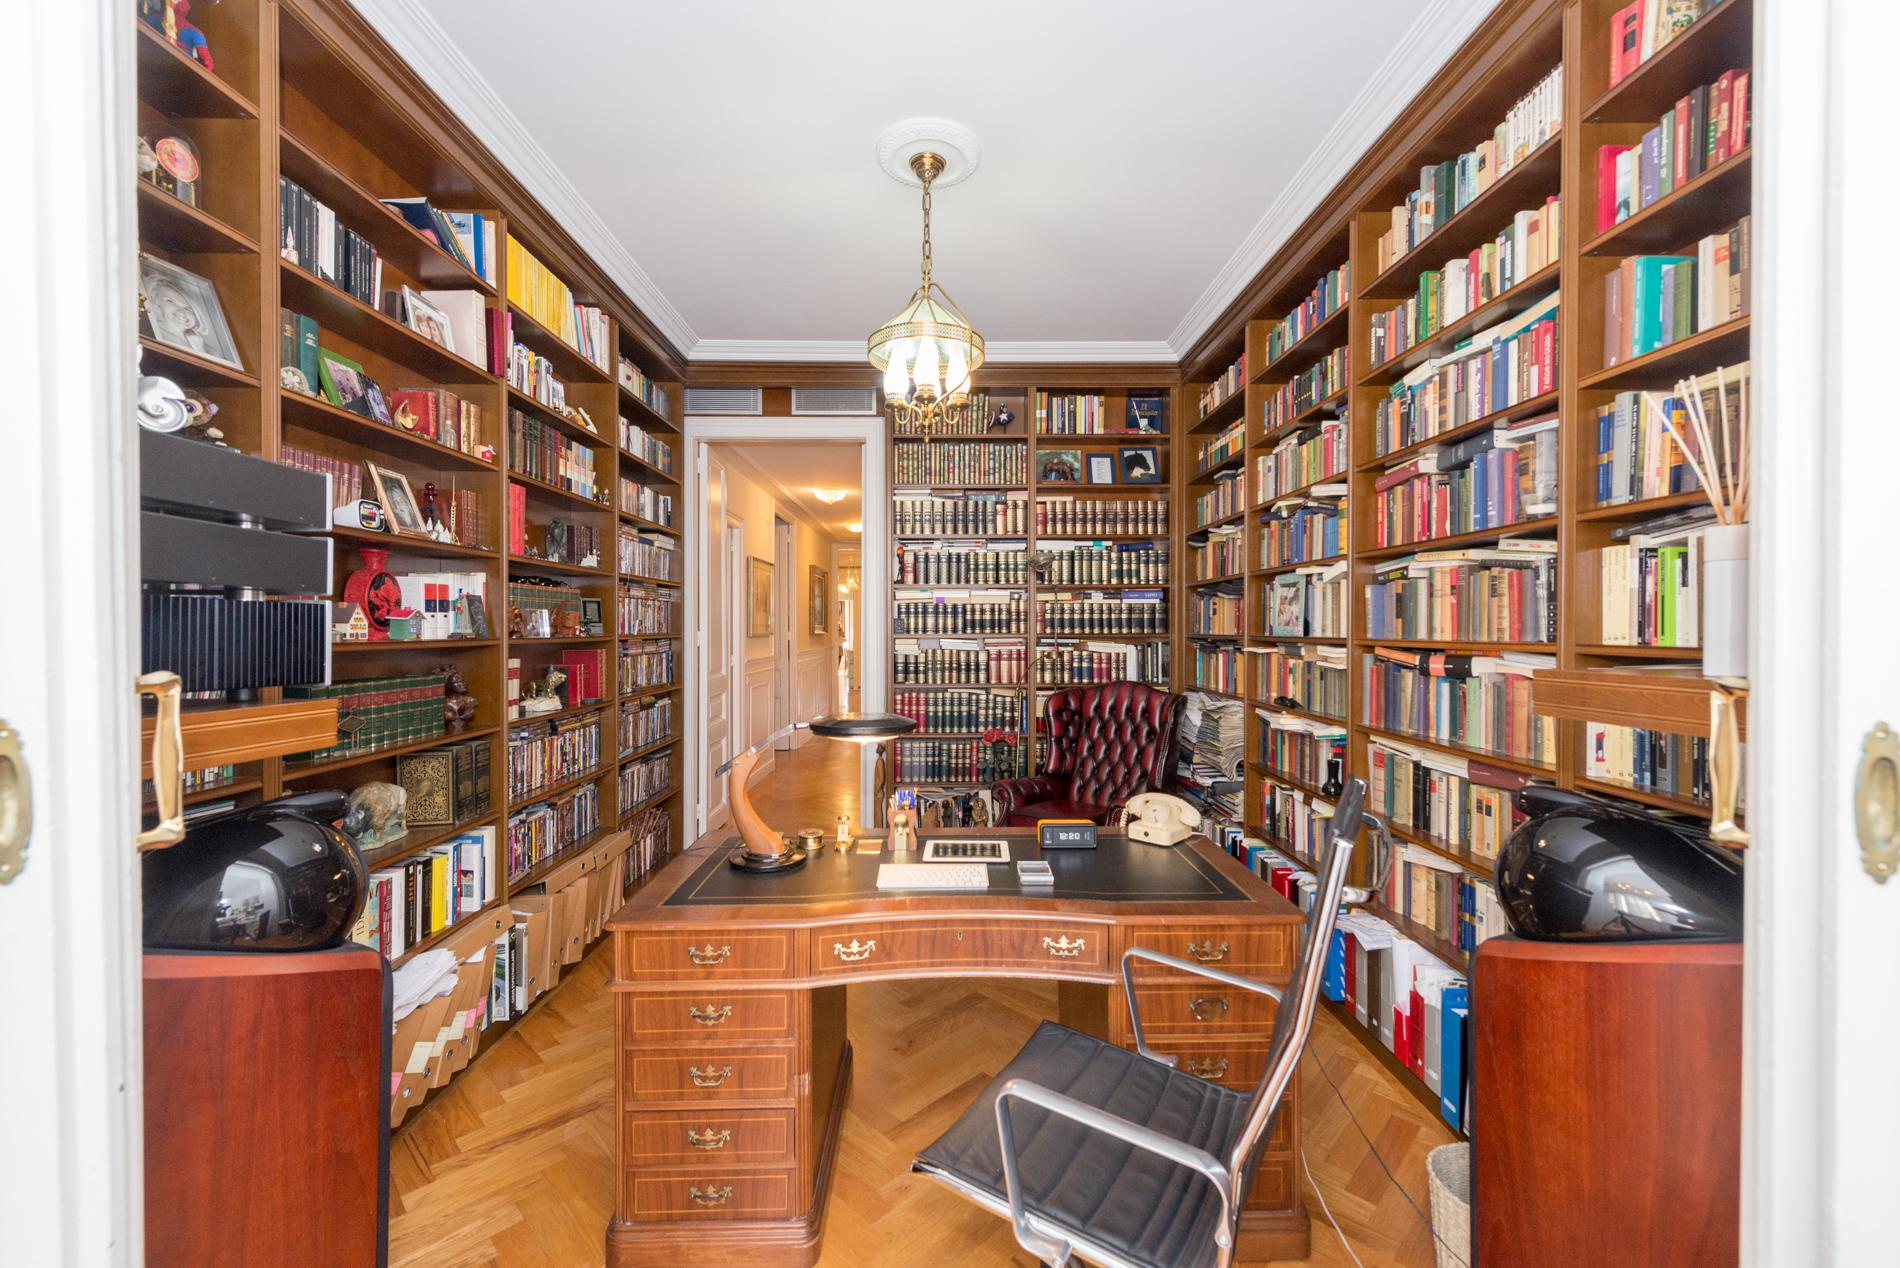 174066 Flat for sale in Eixample, Antiga Esquerre Eixample 10